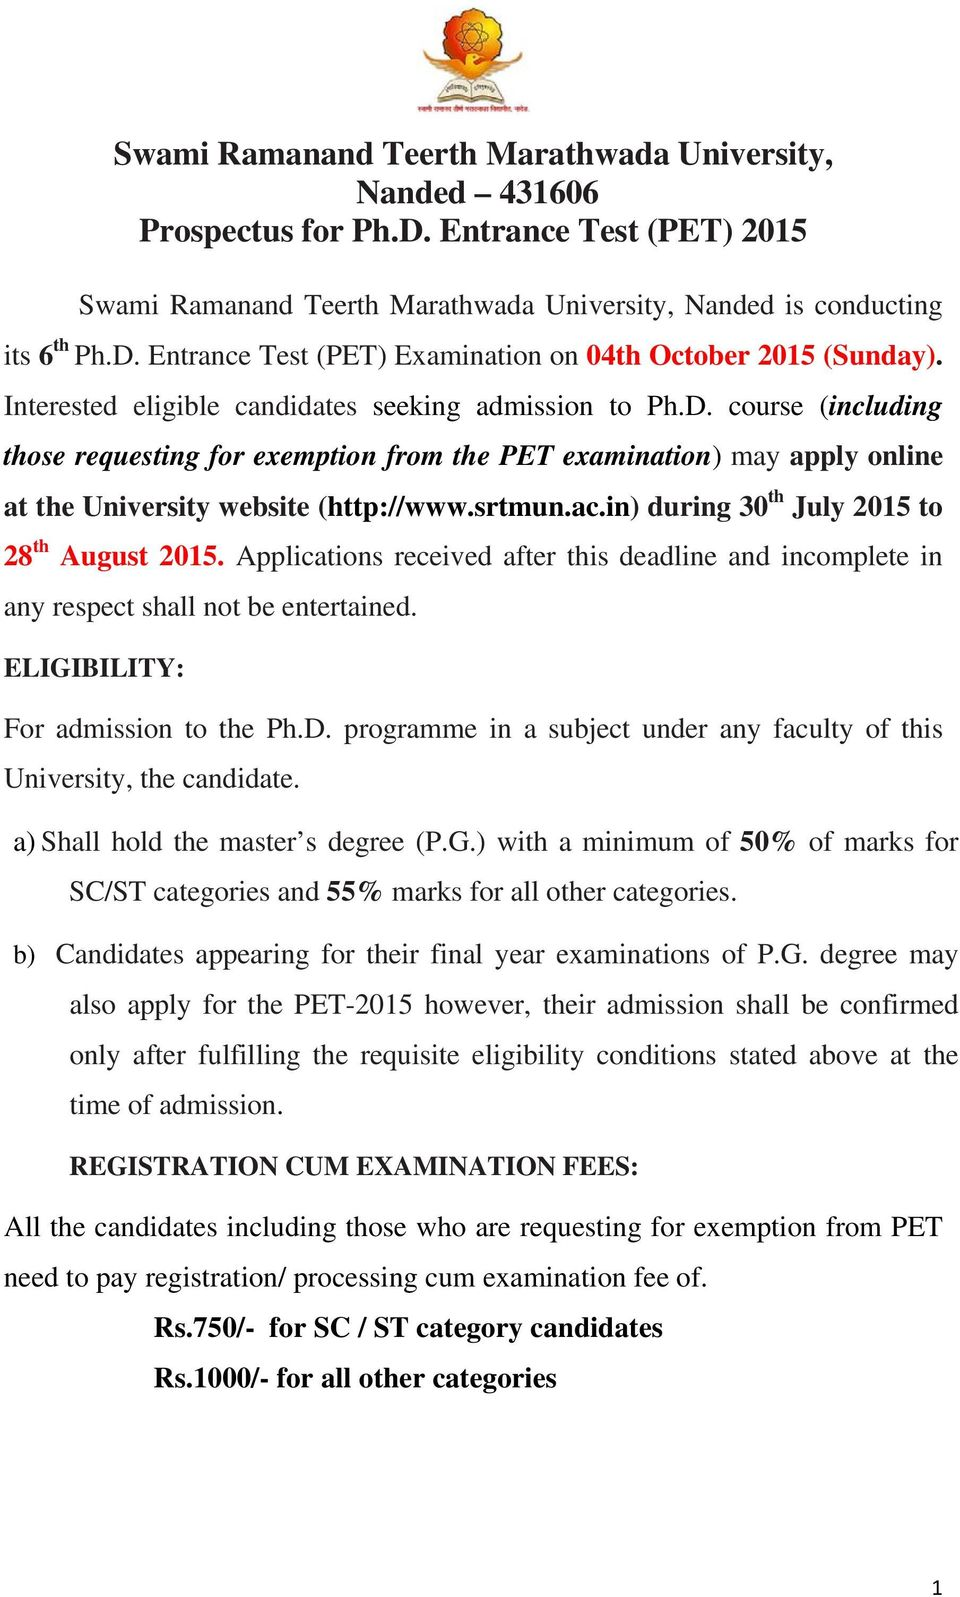 srtmun phd course work exam 2014